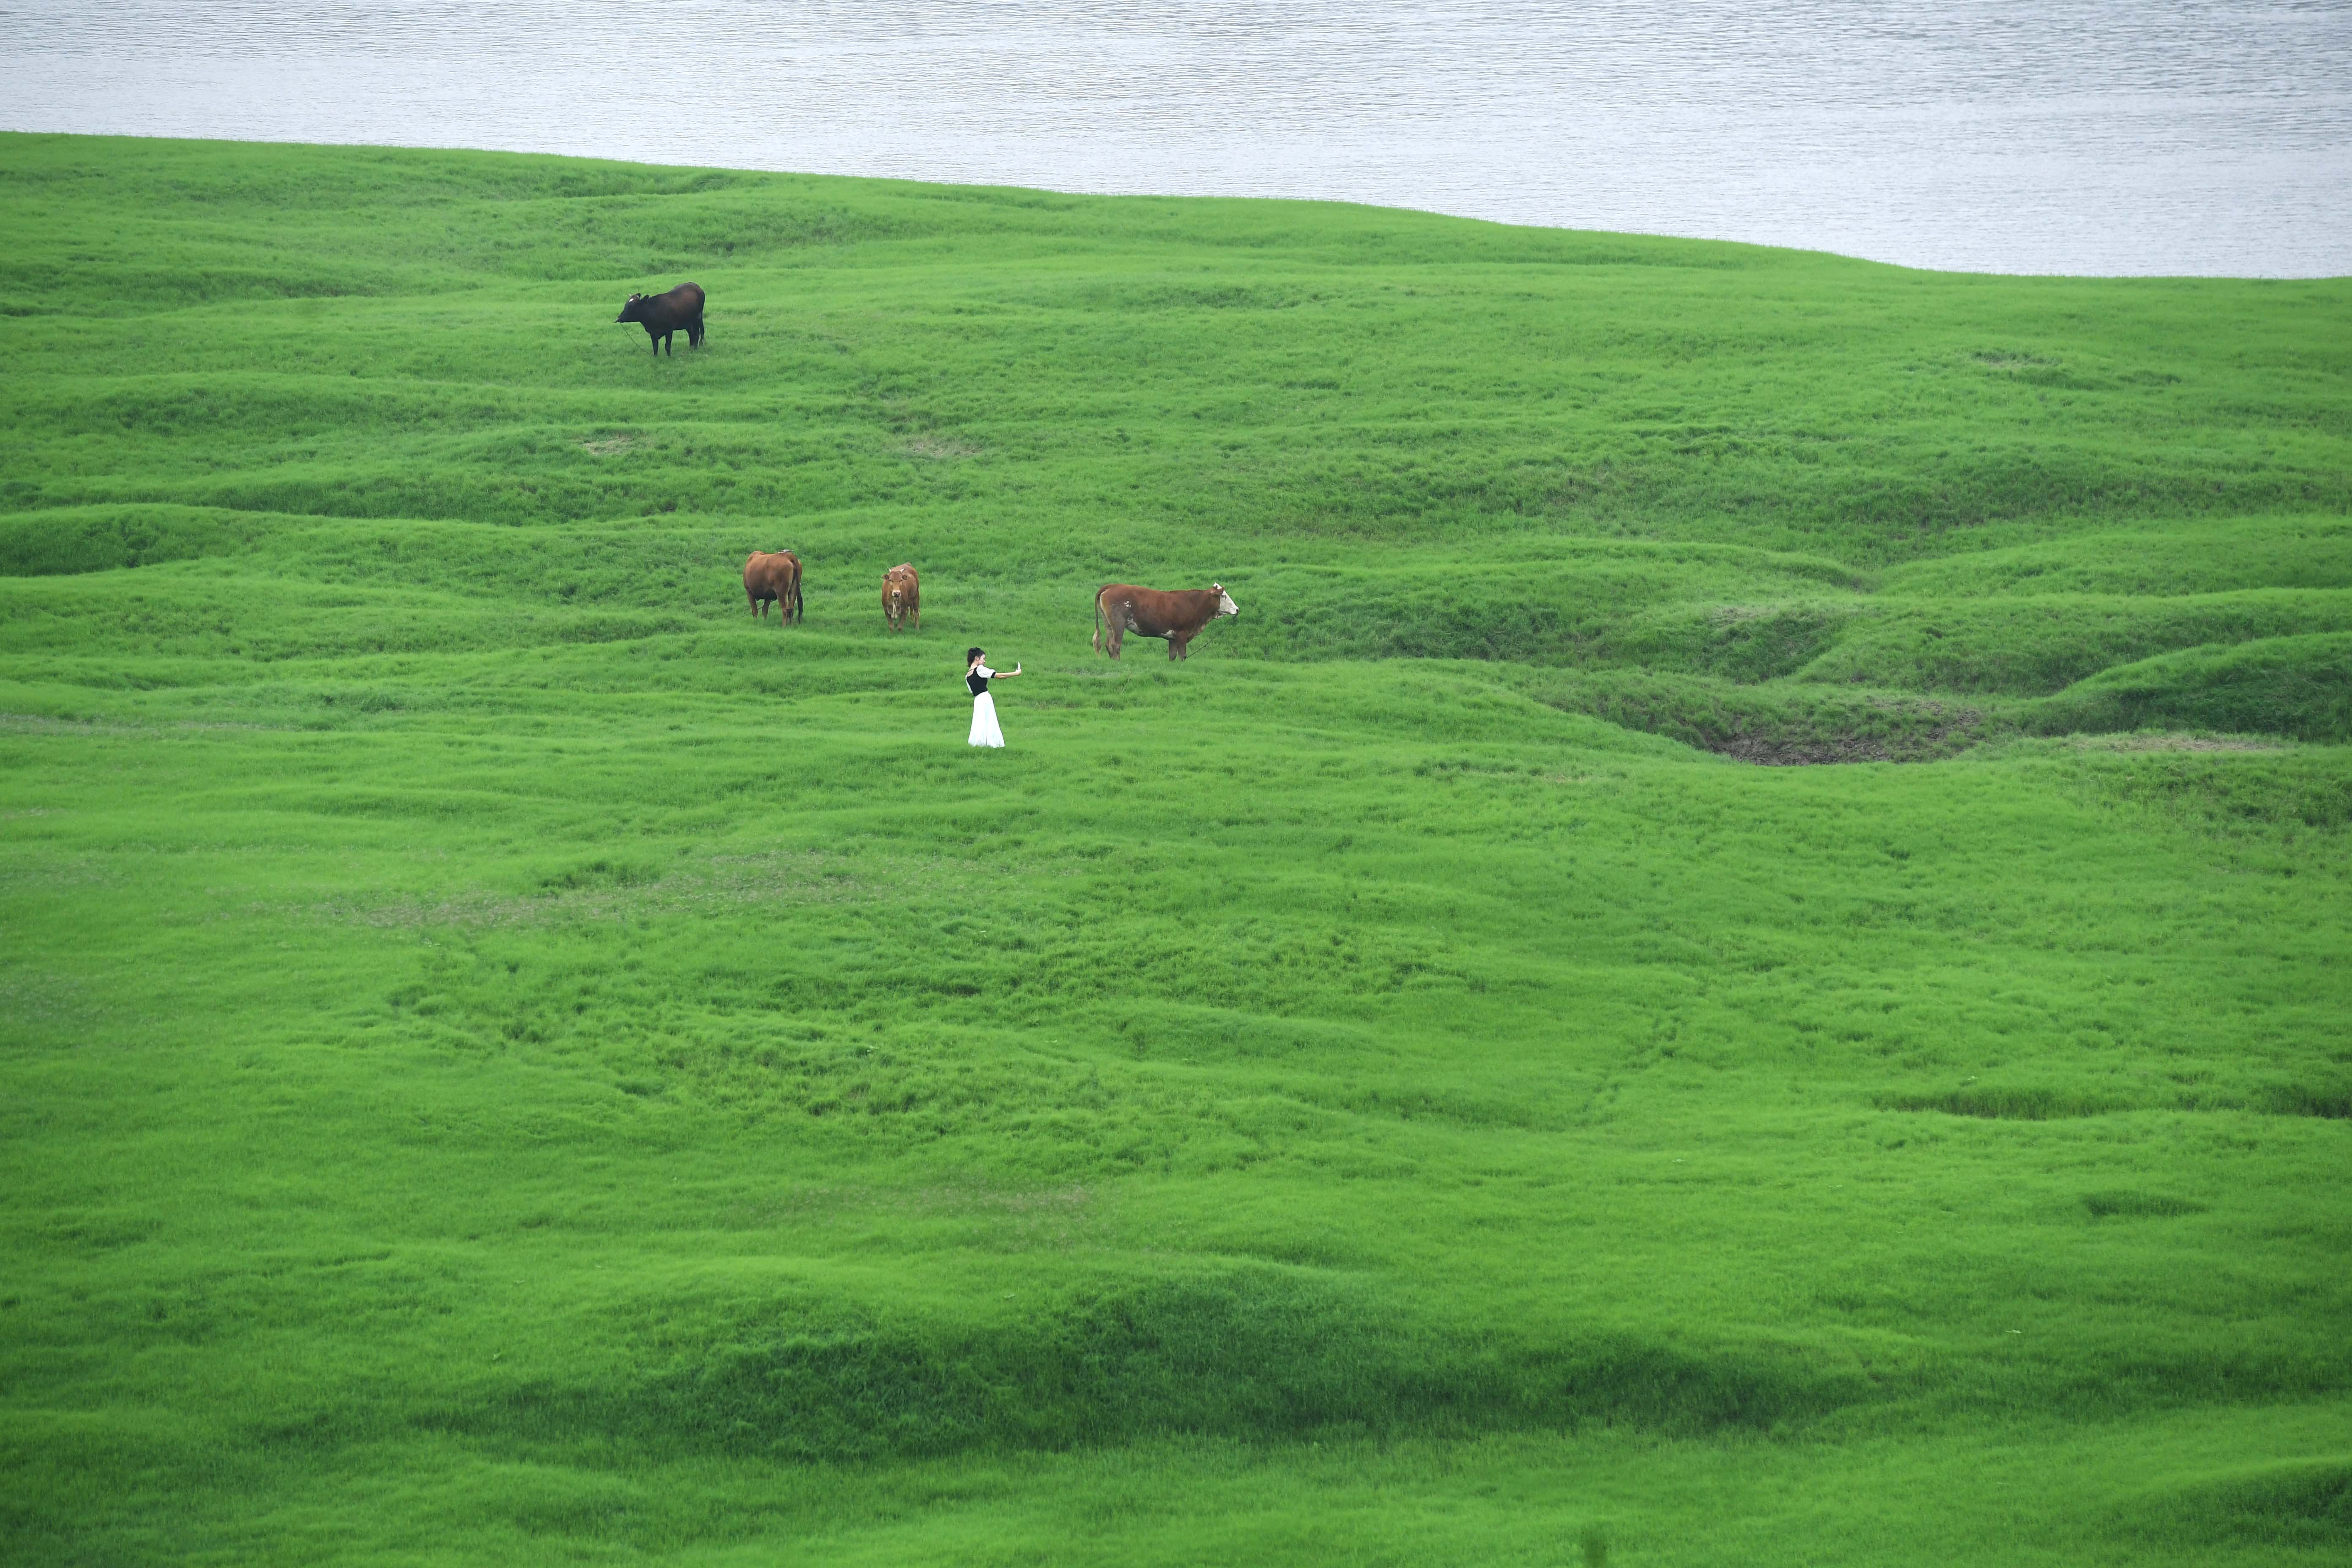 A visitor and cattle are seen on the grass-covered riverbed of the Fuling section of Yangtze river which has been affected by drought, in Chongqing, China June 4, 2020. Picture taken June 4, 2020. cnsphoto via REUTERS   ATTENTION EDITORS - THIS IMAGE WAS PROVIDED BY A THIRD PARTY. CHINA OUT.